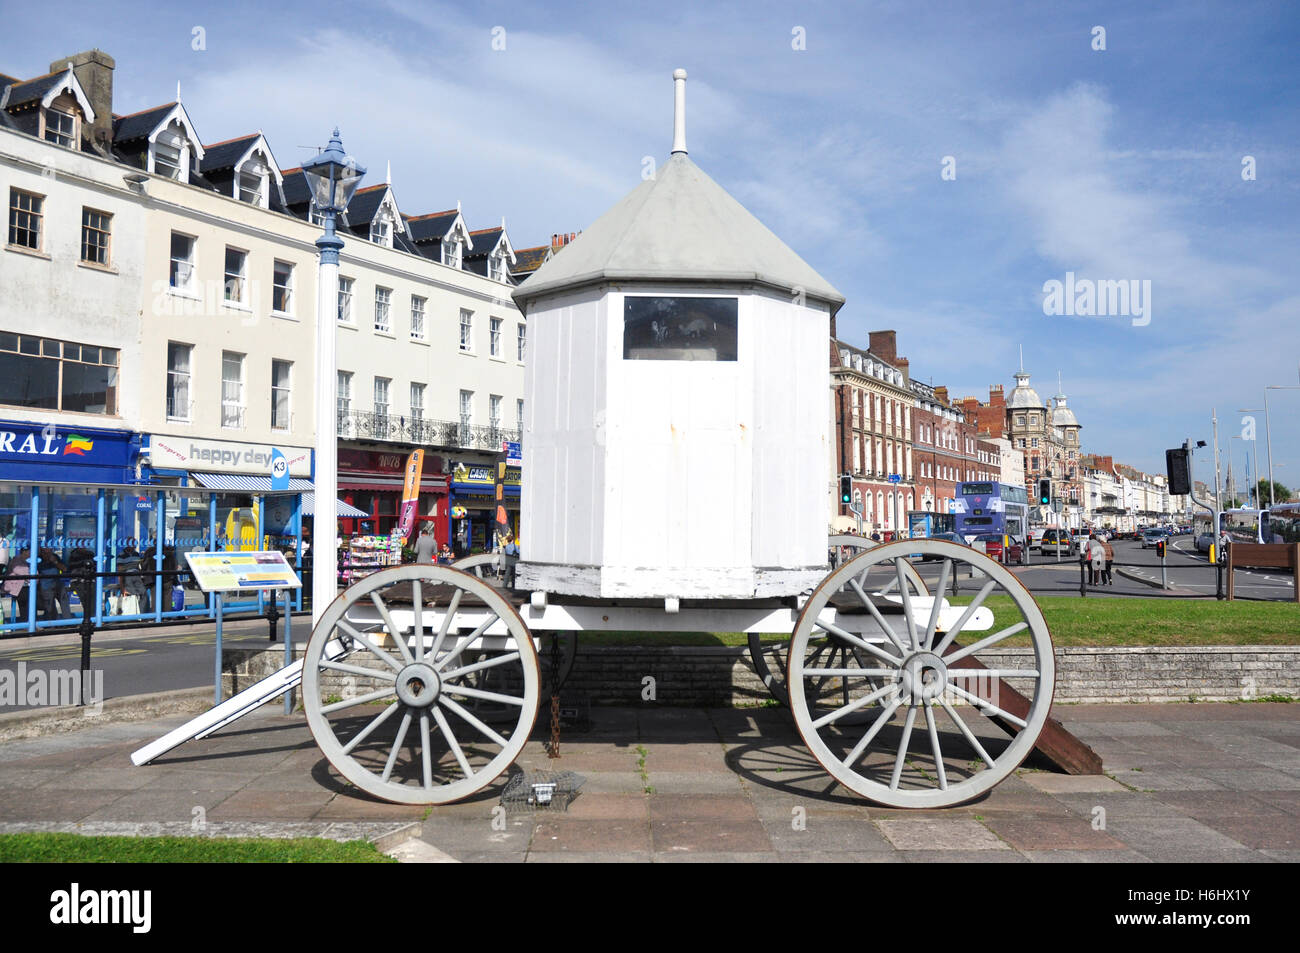 Full size replica sea bathing machine - as used by George 111 - Weymouth seafront - sunlight - blue sky - Stock Image